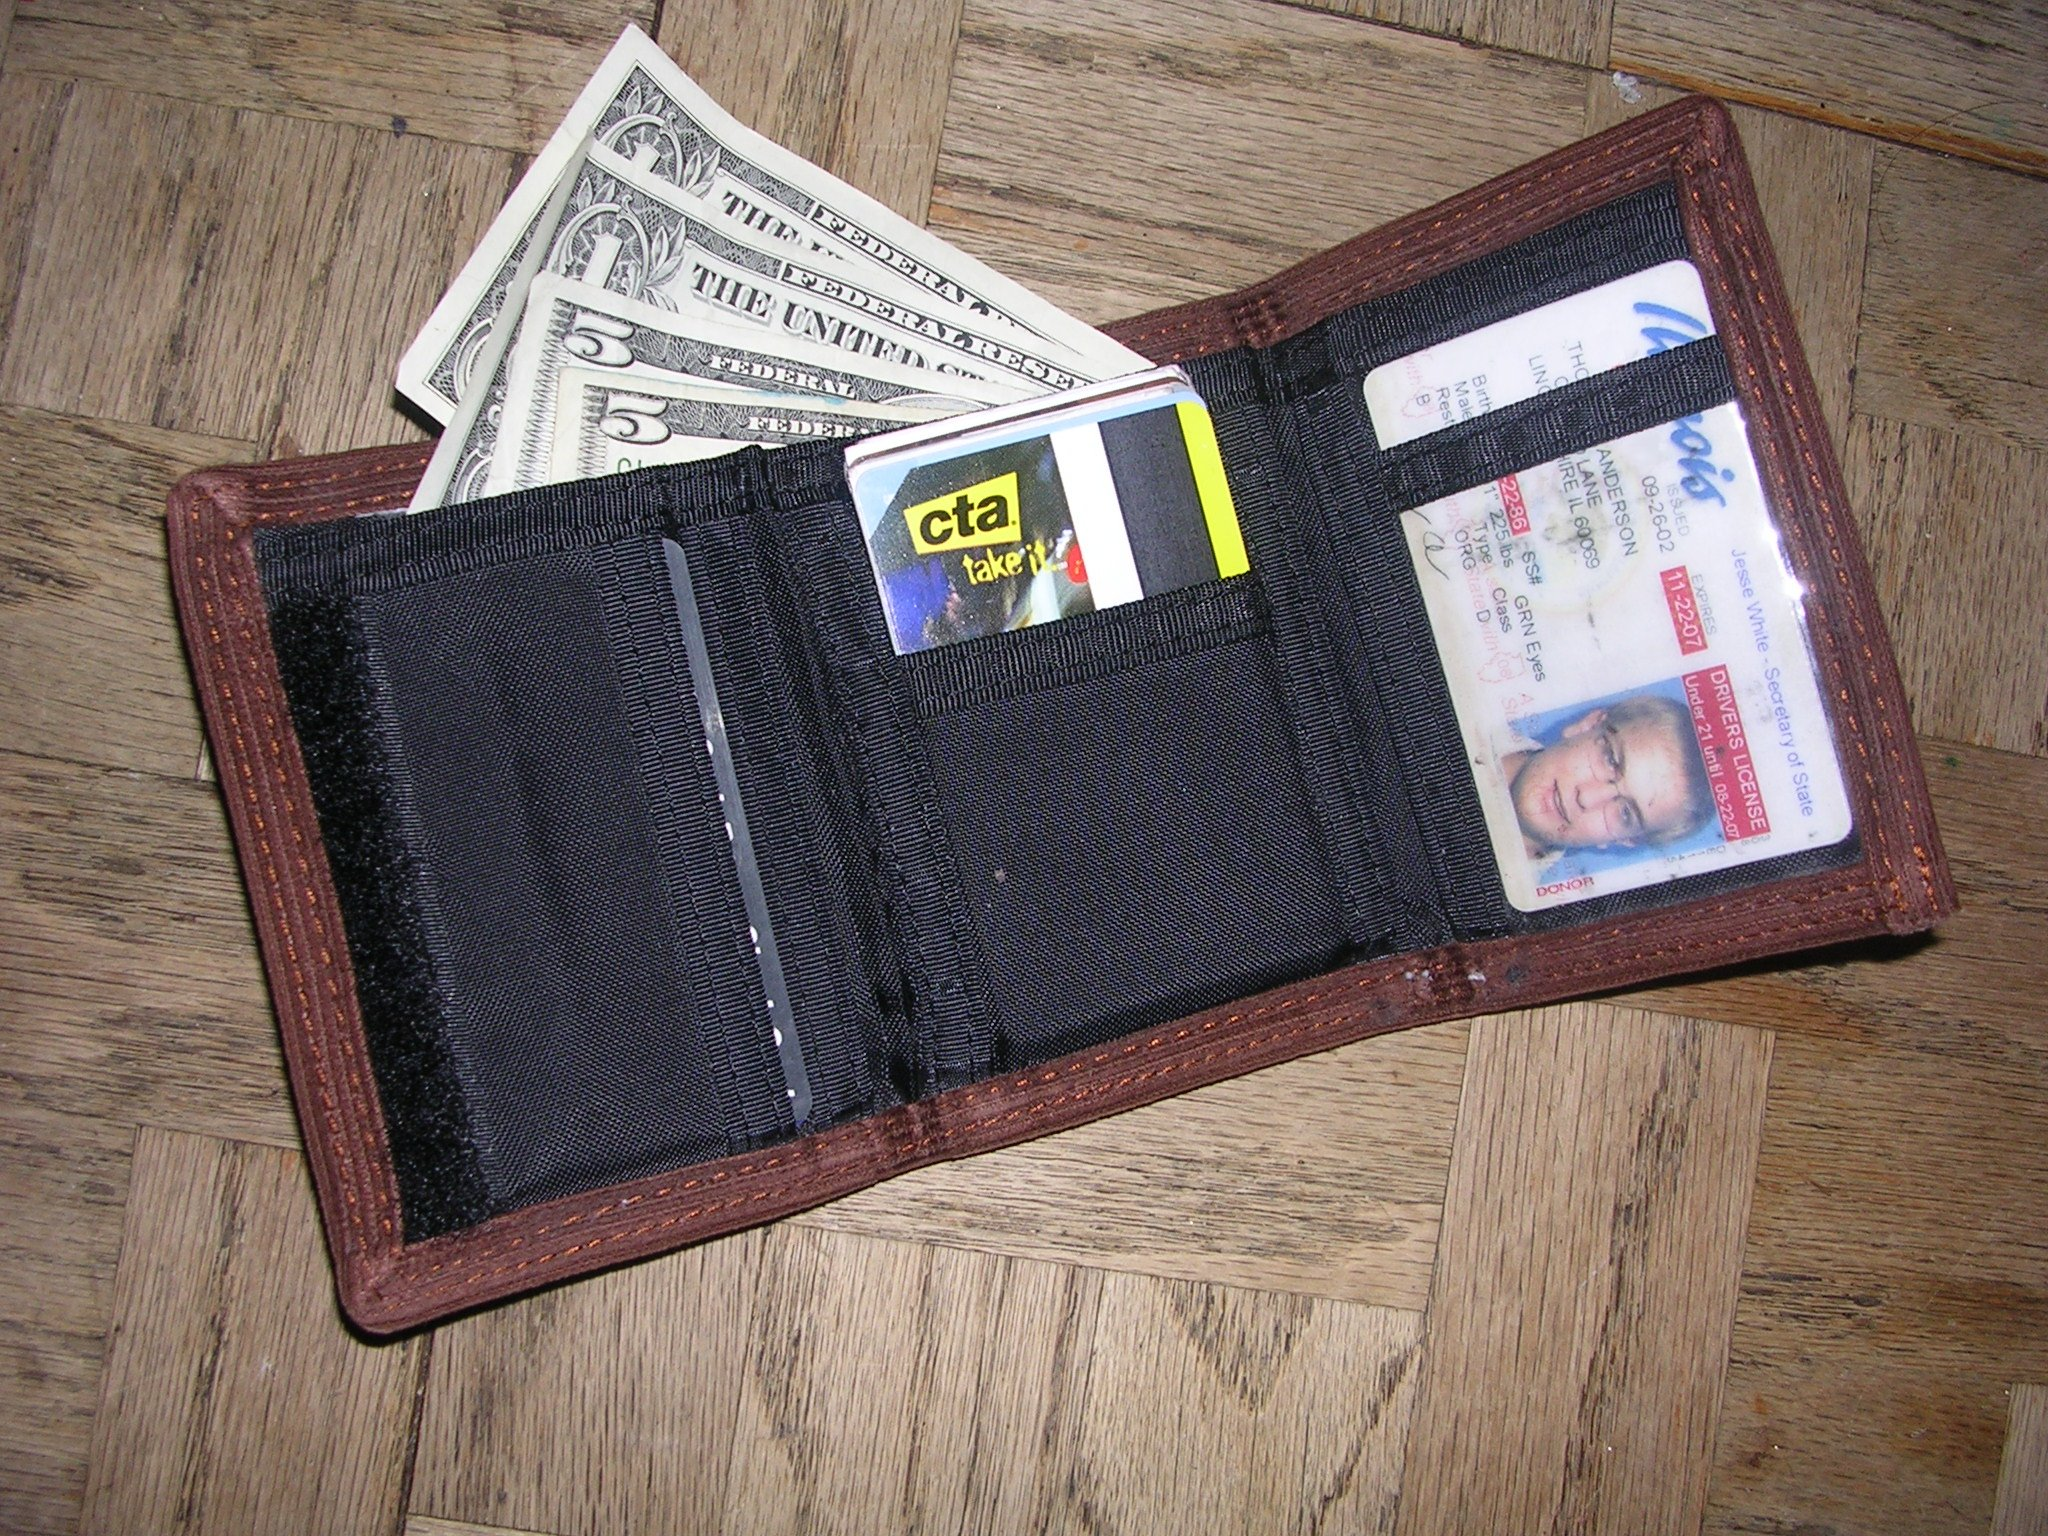 f47760d86daae Wallet - Wikipedia